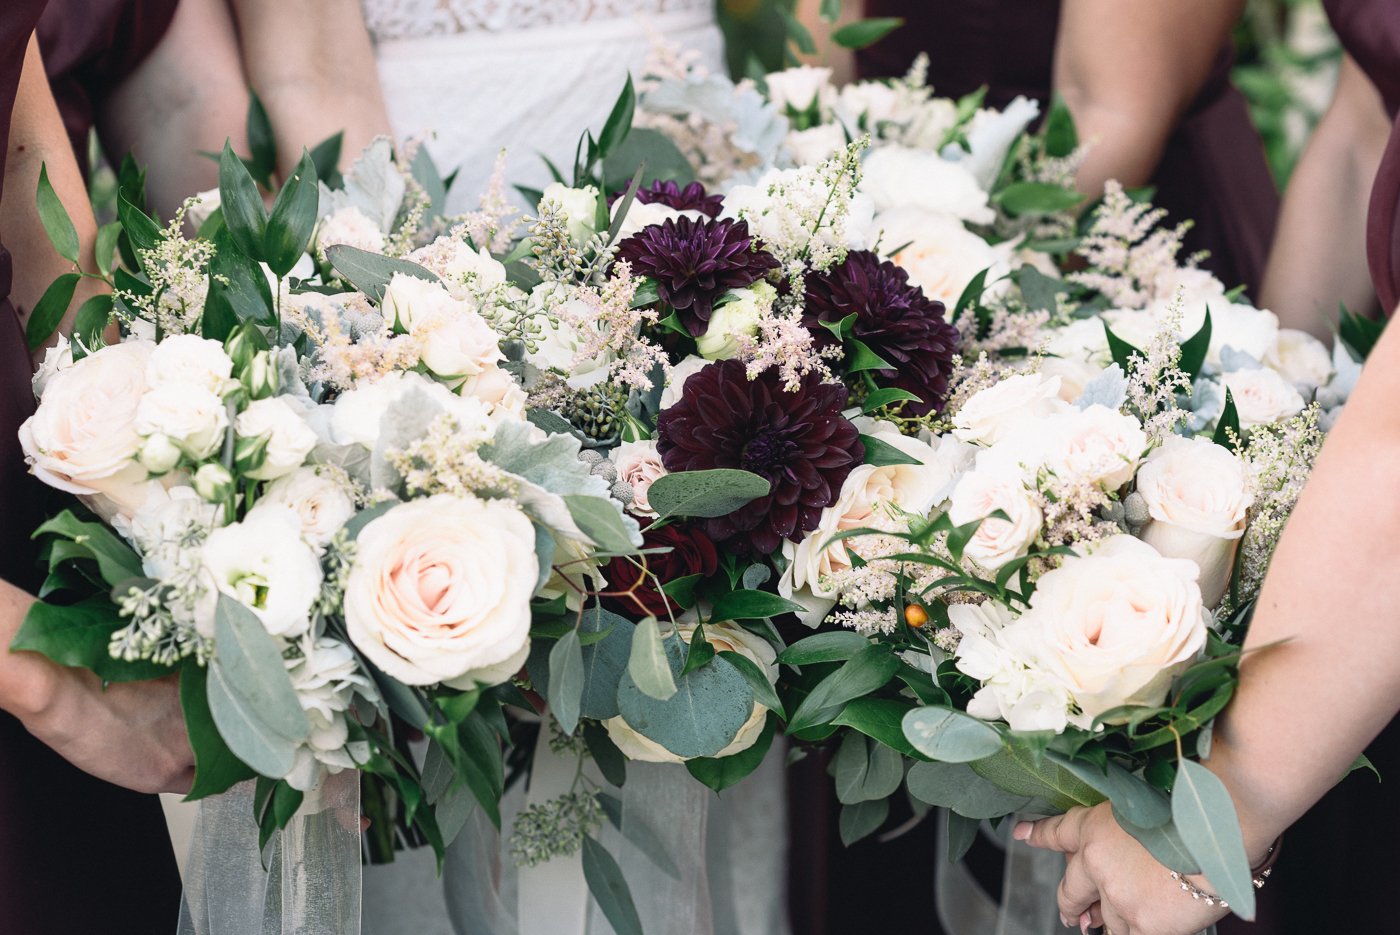 wedding flowers bouquets pink rose